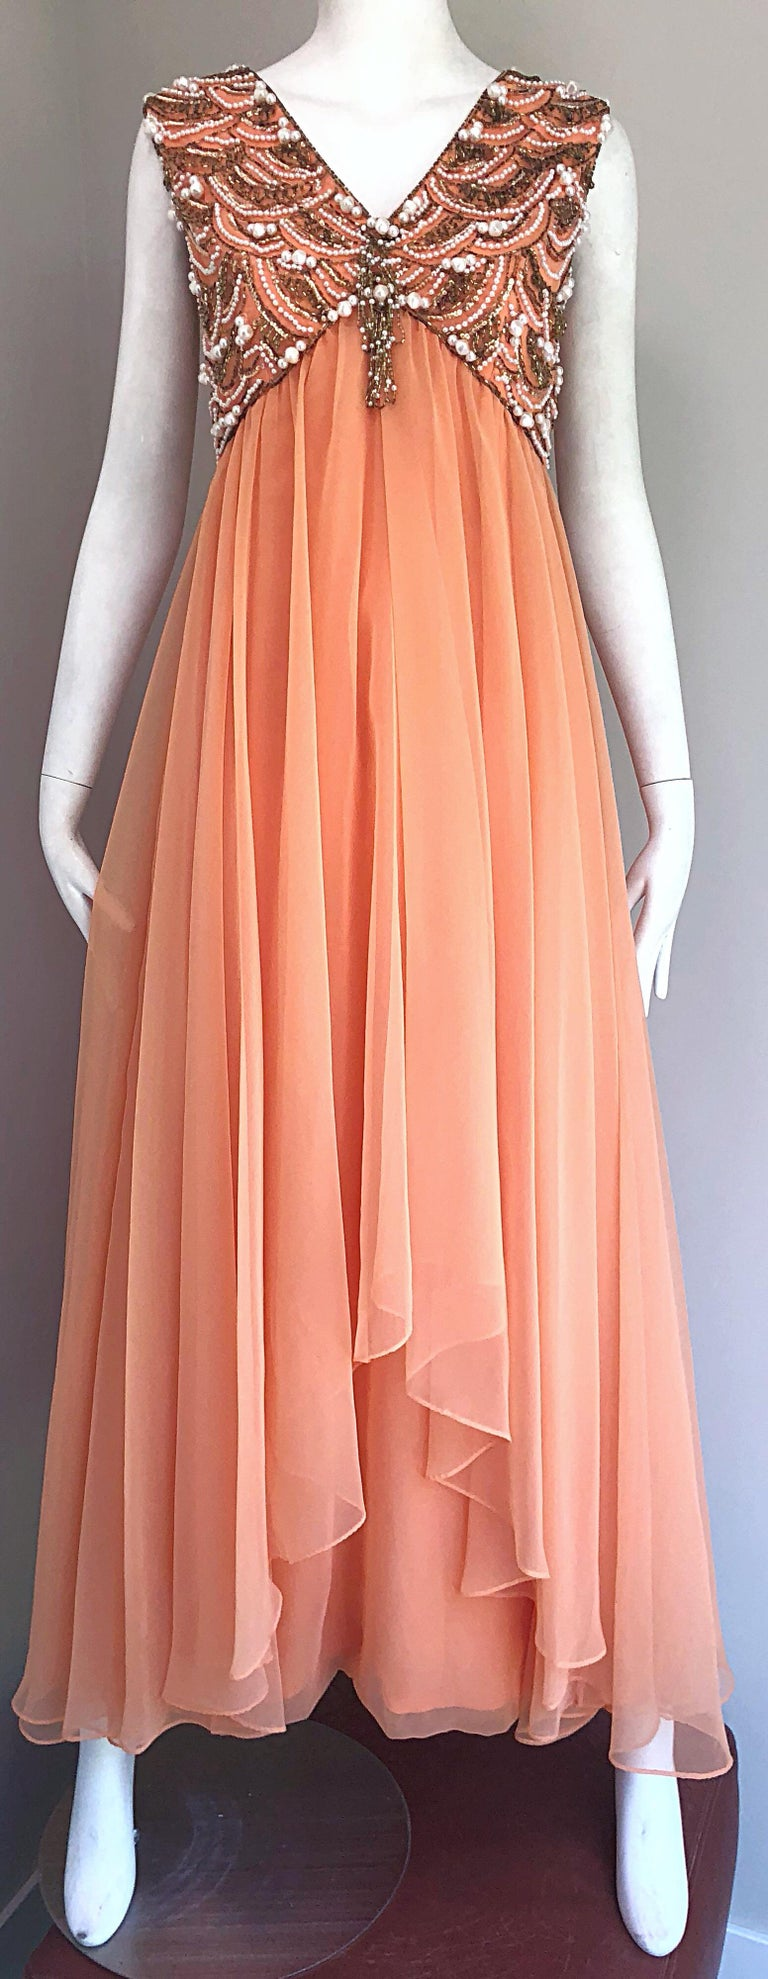 1960s Isabell Gerhart Sherbet Coral Demi Couture Beaded Chiffon 60s Gown Dress For Sale 3